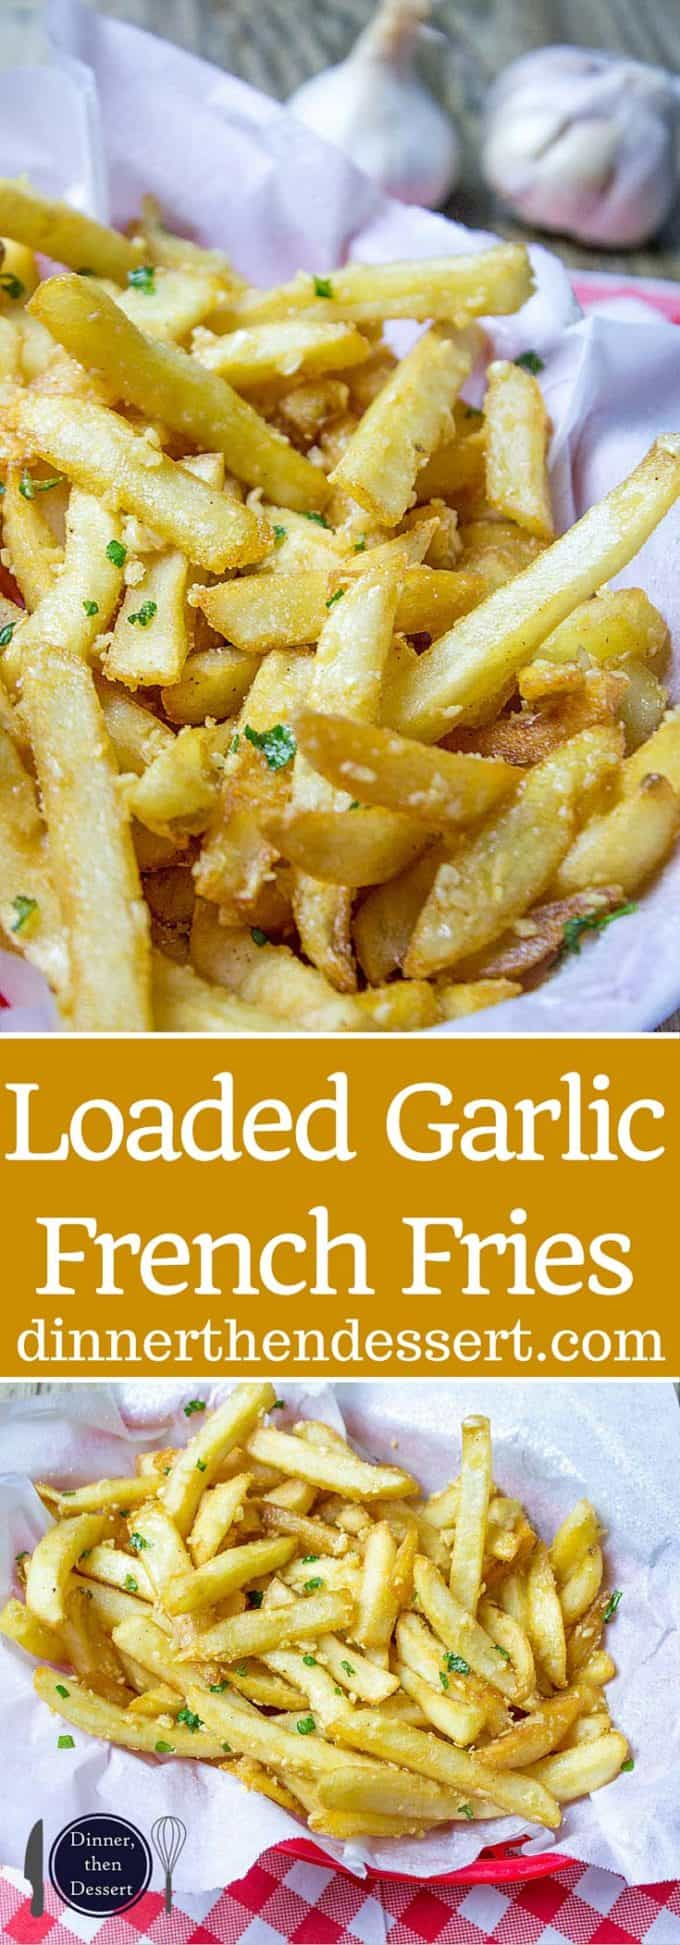 Loaded Garlic French Fries tossed in slightly warmed chopped garlic ...